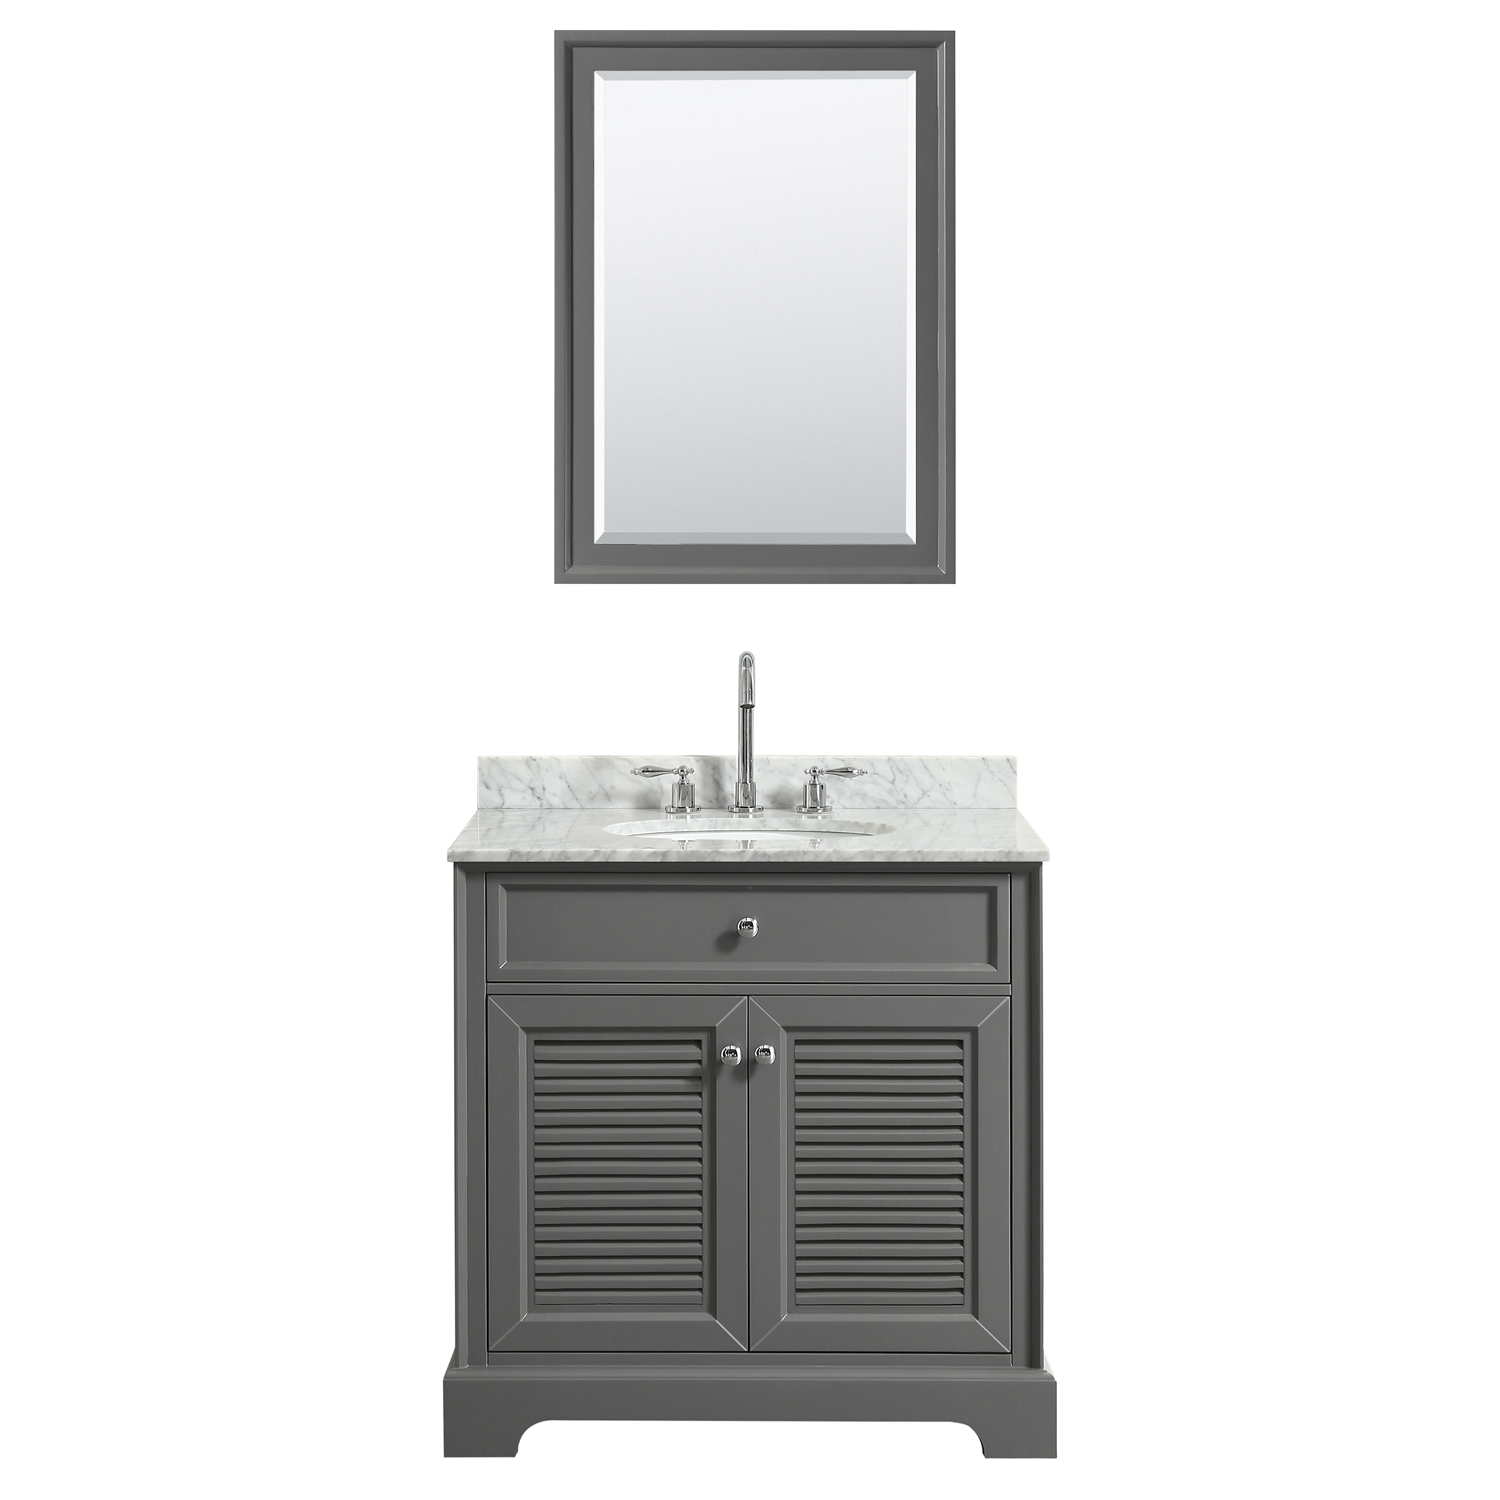 "30"" Single Bathroom Vanity in White Carrara Marble Countertop with Undermount Sink, Medicine Cabinet, Mirror and Color Options"